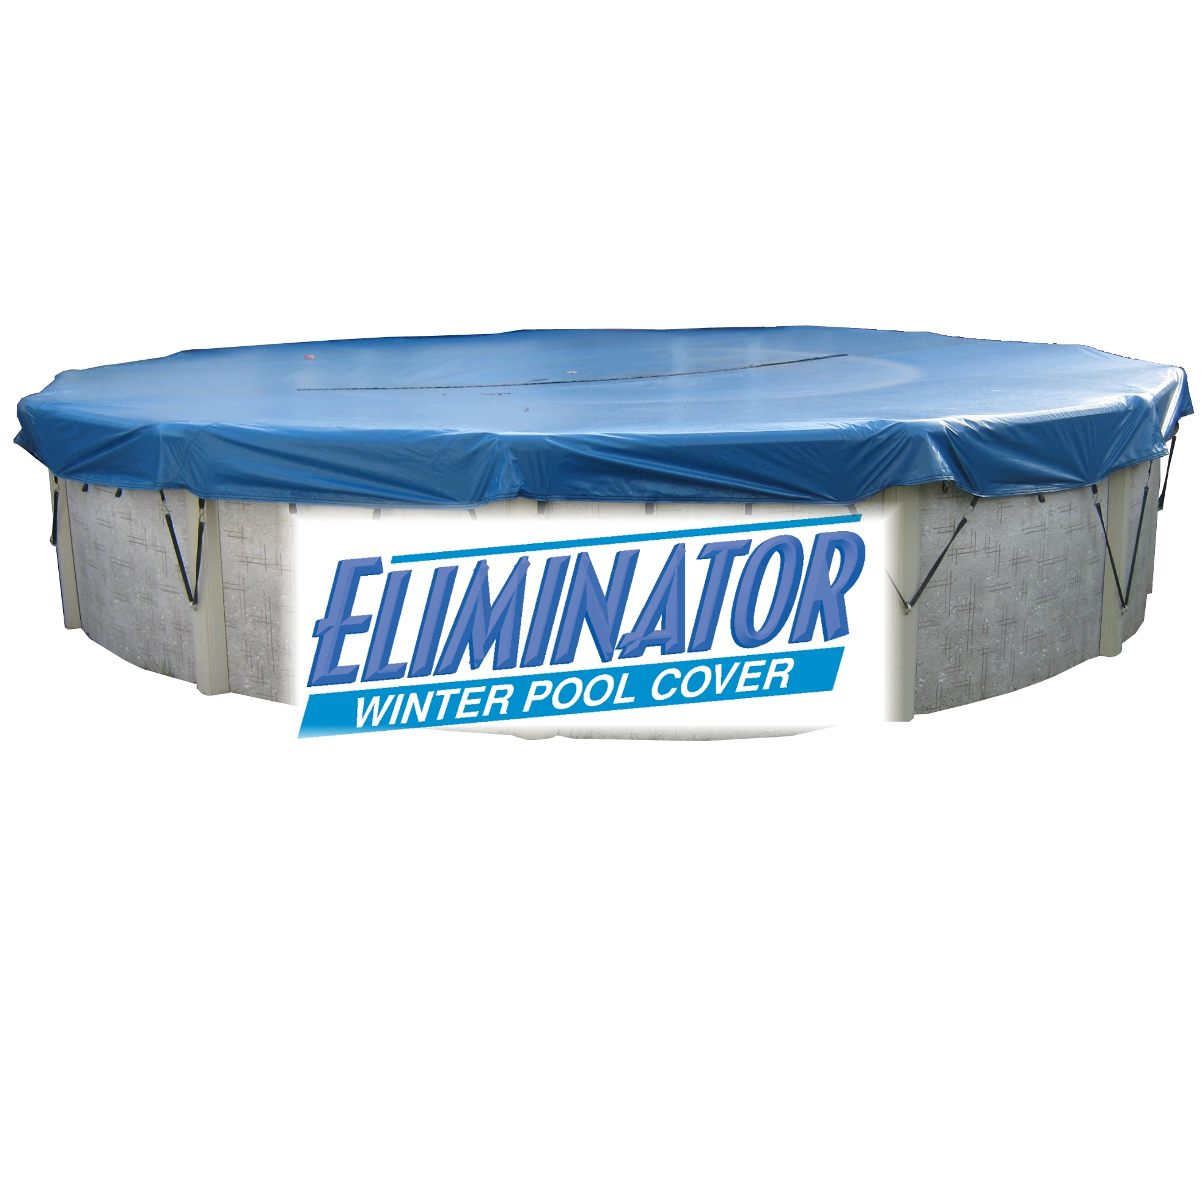 https://0201.nccdn.net/1_2/000/000/0ce/ded/Arctic-Blue-Covers-Eliminator.jpg